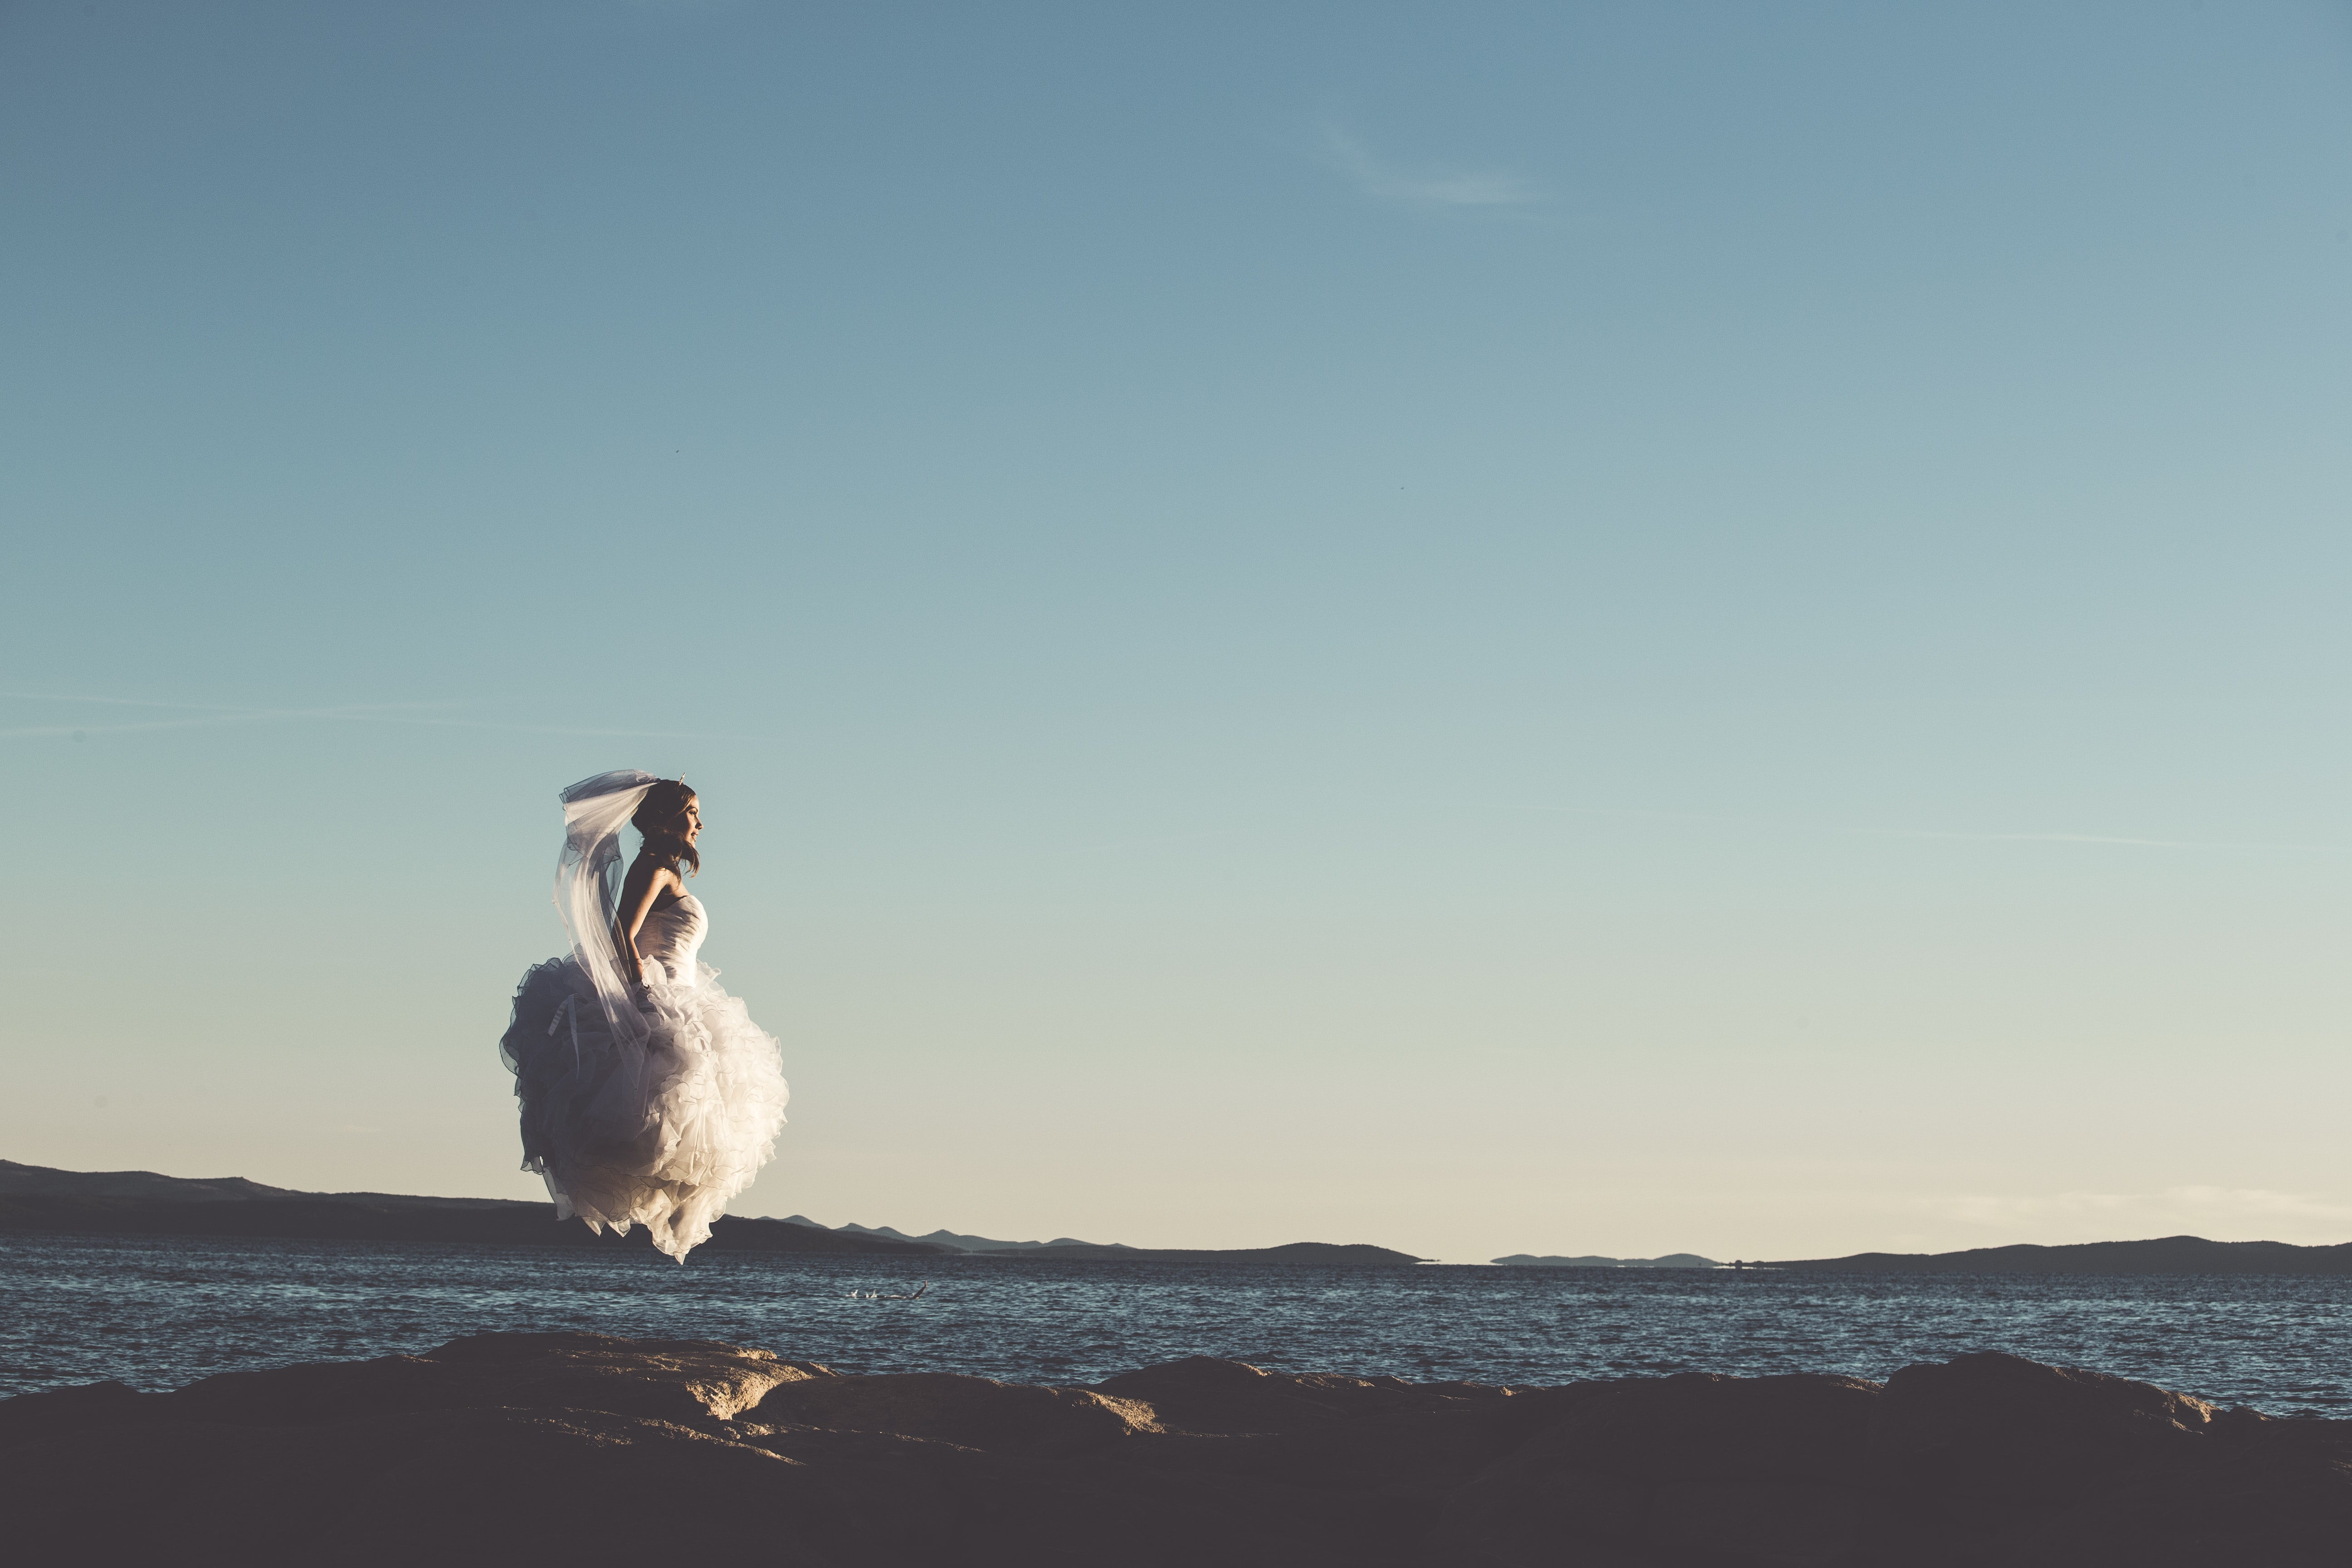 woman in white bridal gown jump in mid air next to body of water